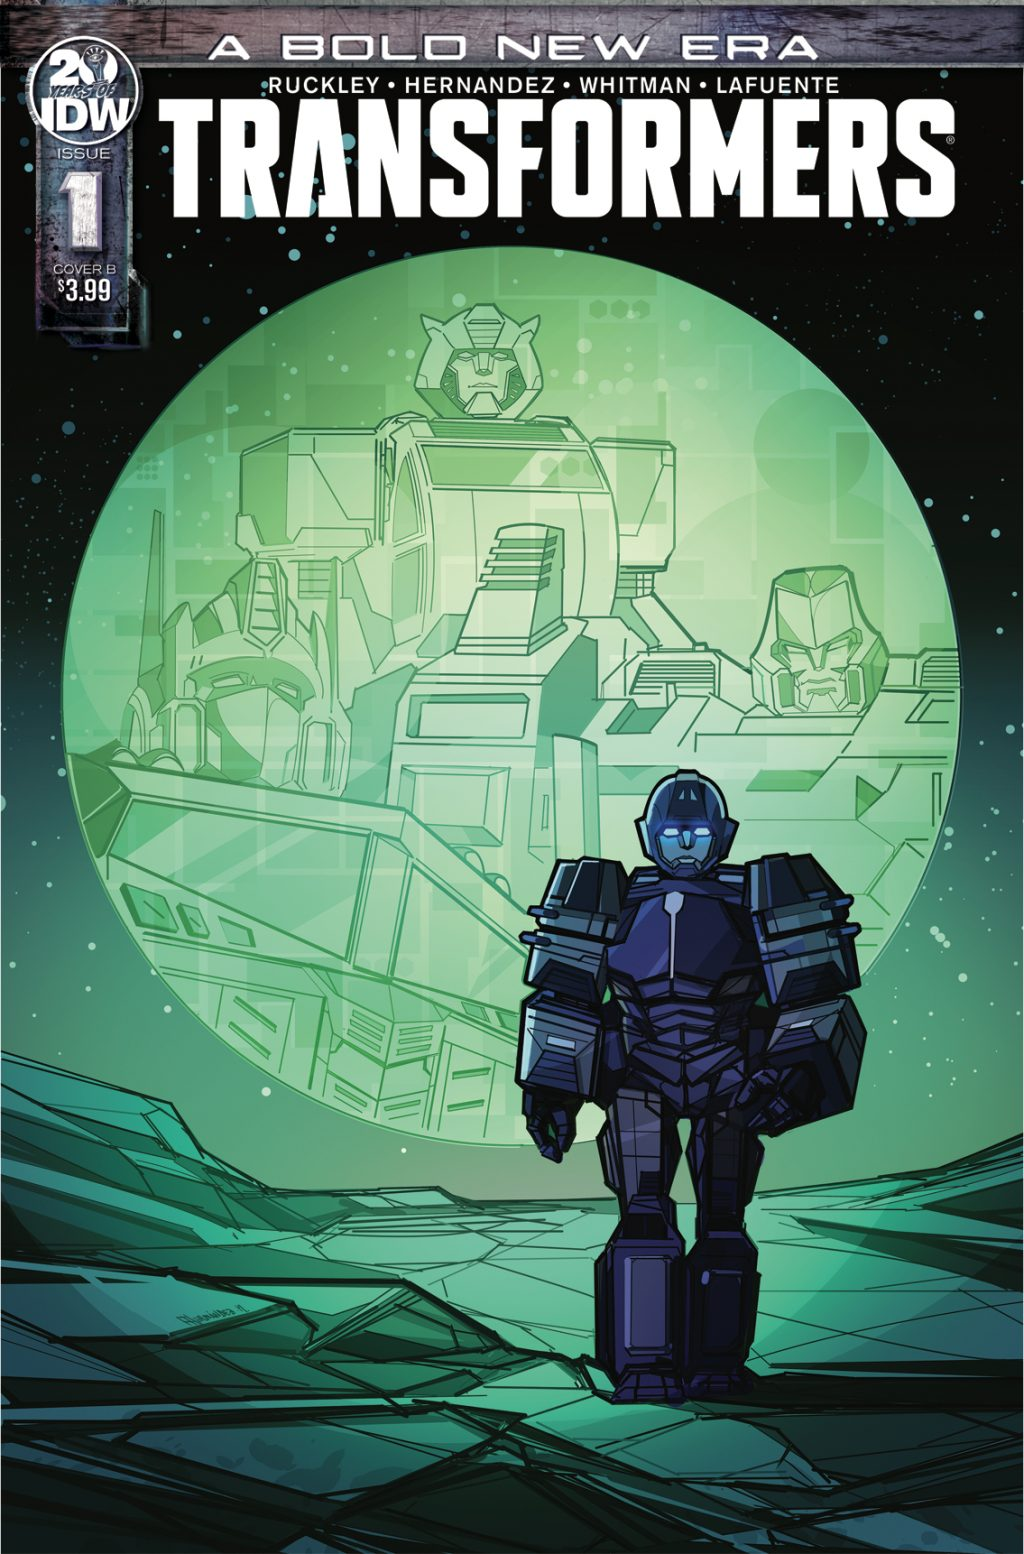 OPTIMUS PRIME #1 IDW COMICS NOVEMBER 2016